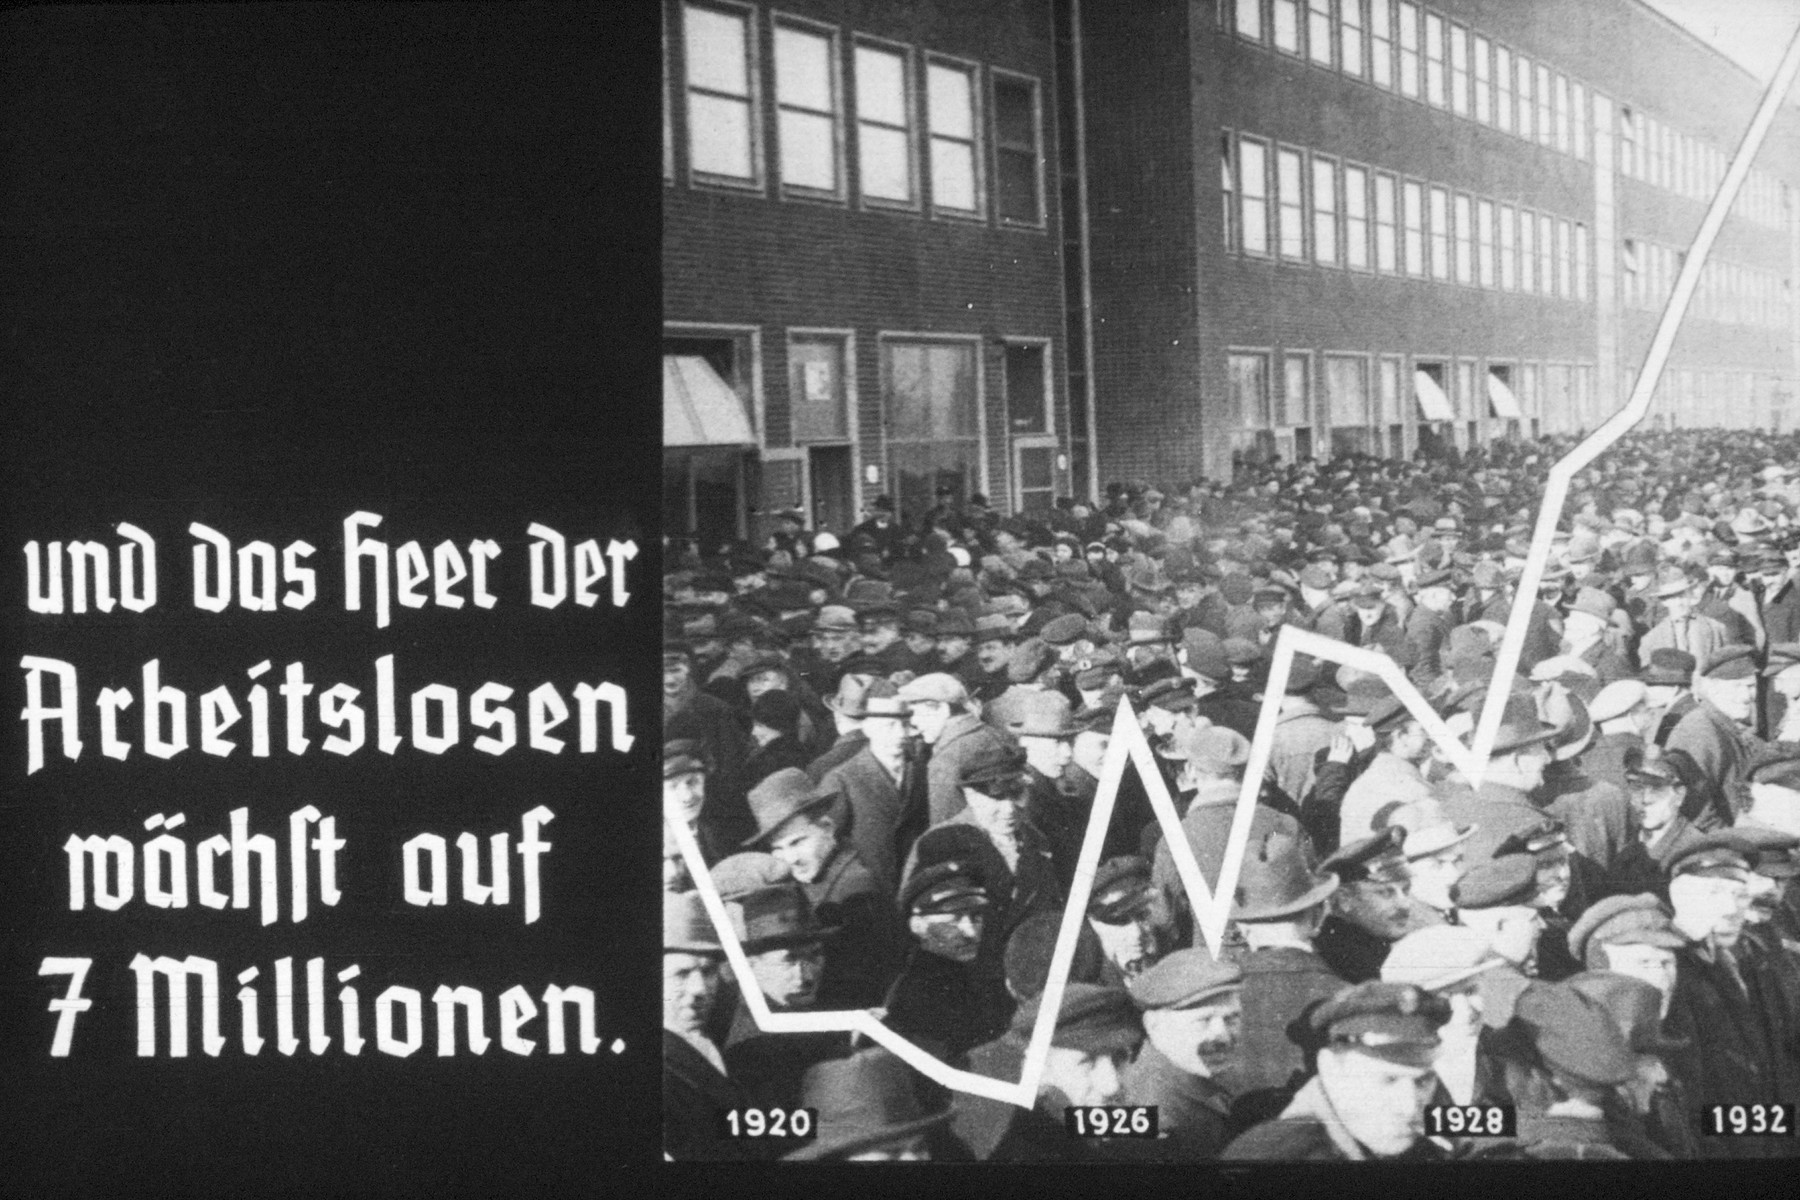 16th slide slide from a Hitler Youth slideshow about the aftermath of WWI, Versailles, how it was overcome and the rise of Nazism.  und das heer der Arbeitslosen wächst auf 7 Millionen // and the army of the unemployed grows to 7 million